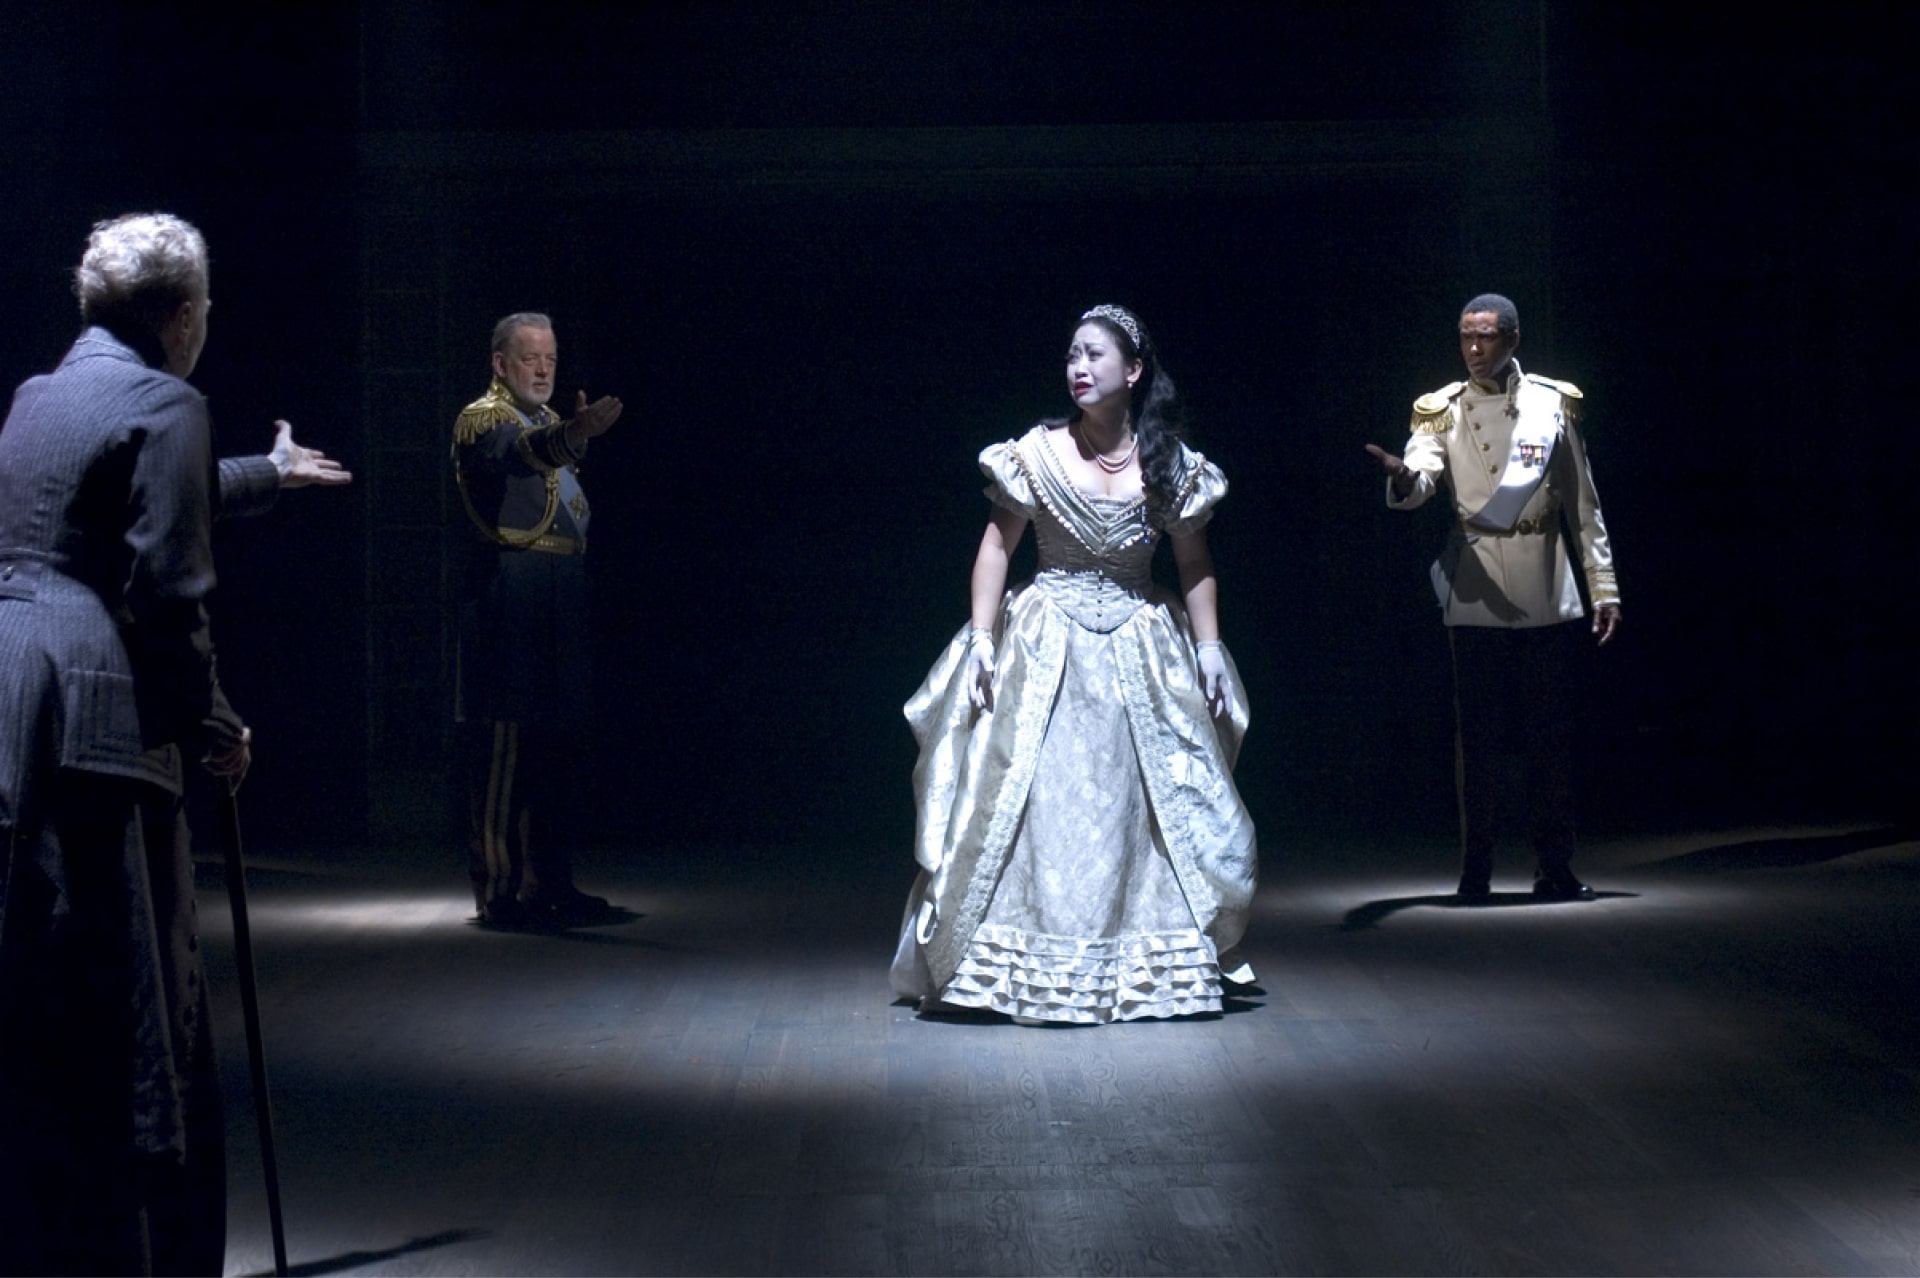 Woman in white gown stands in spotlight surrounded by three men other characters.